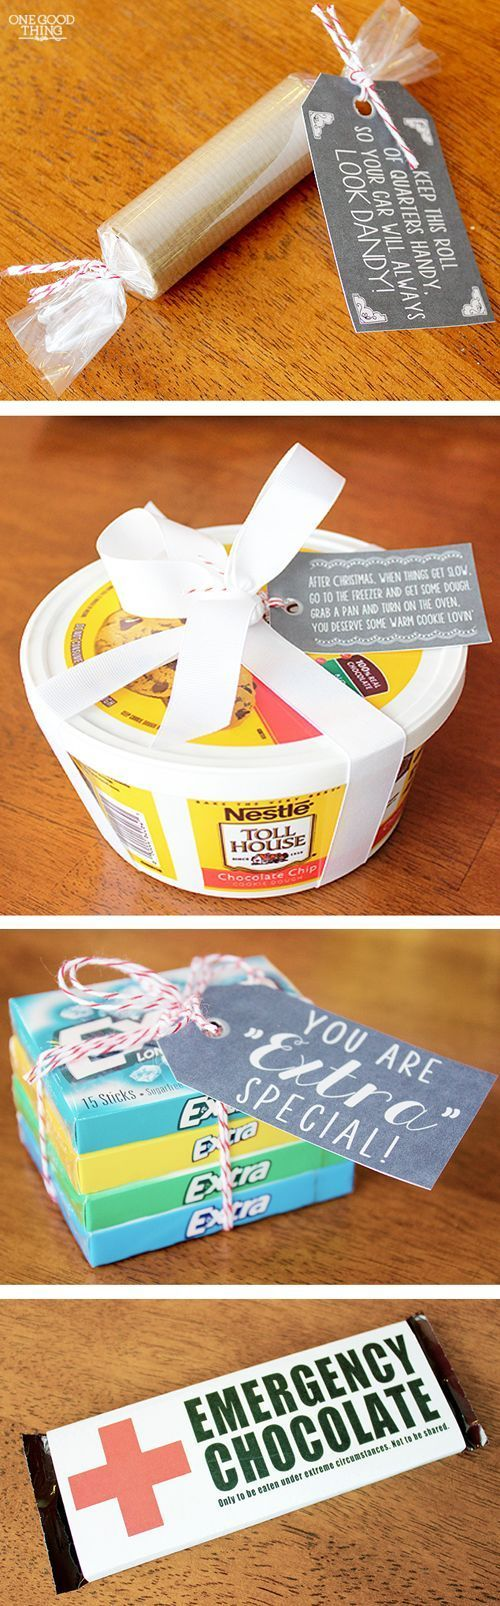 Last Minute Stocking Stuffer  Neighbor Gift Ideas With FREE Printables! | One Good Thing By Jillee